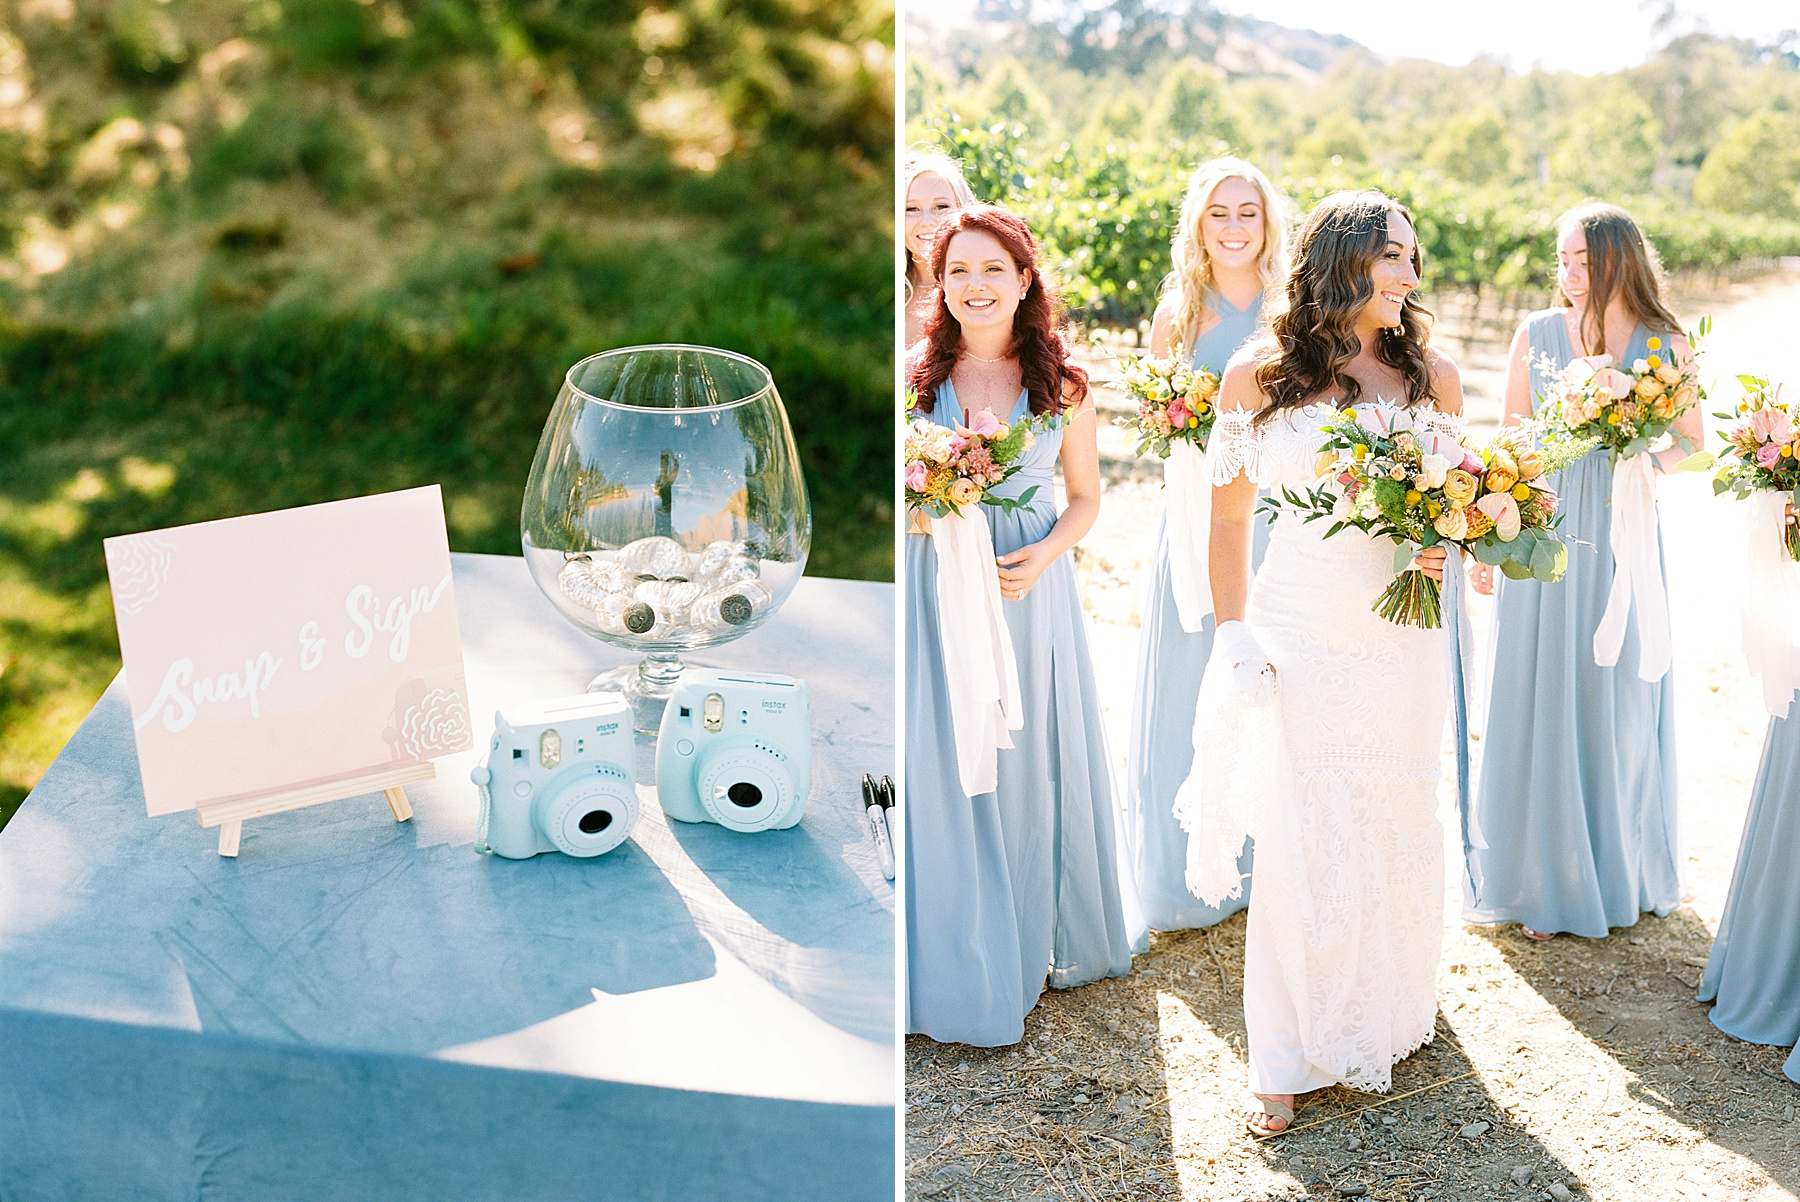 Wente Wedding with A Tropical Color Palette - Ashley & Mike - Featured on Inspired by This - Ashley Baumgartner_0035.jpg